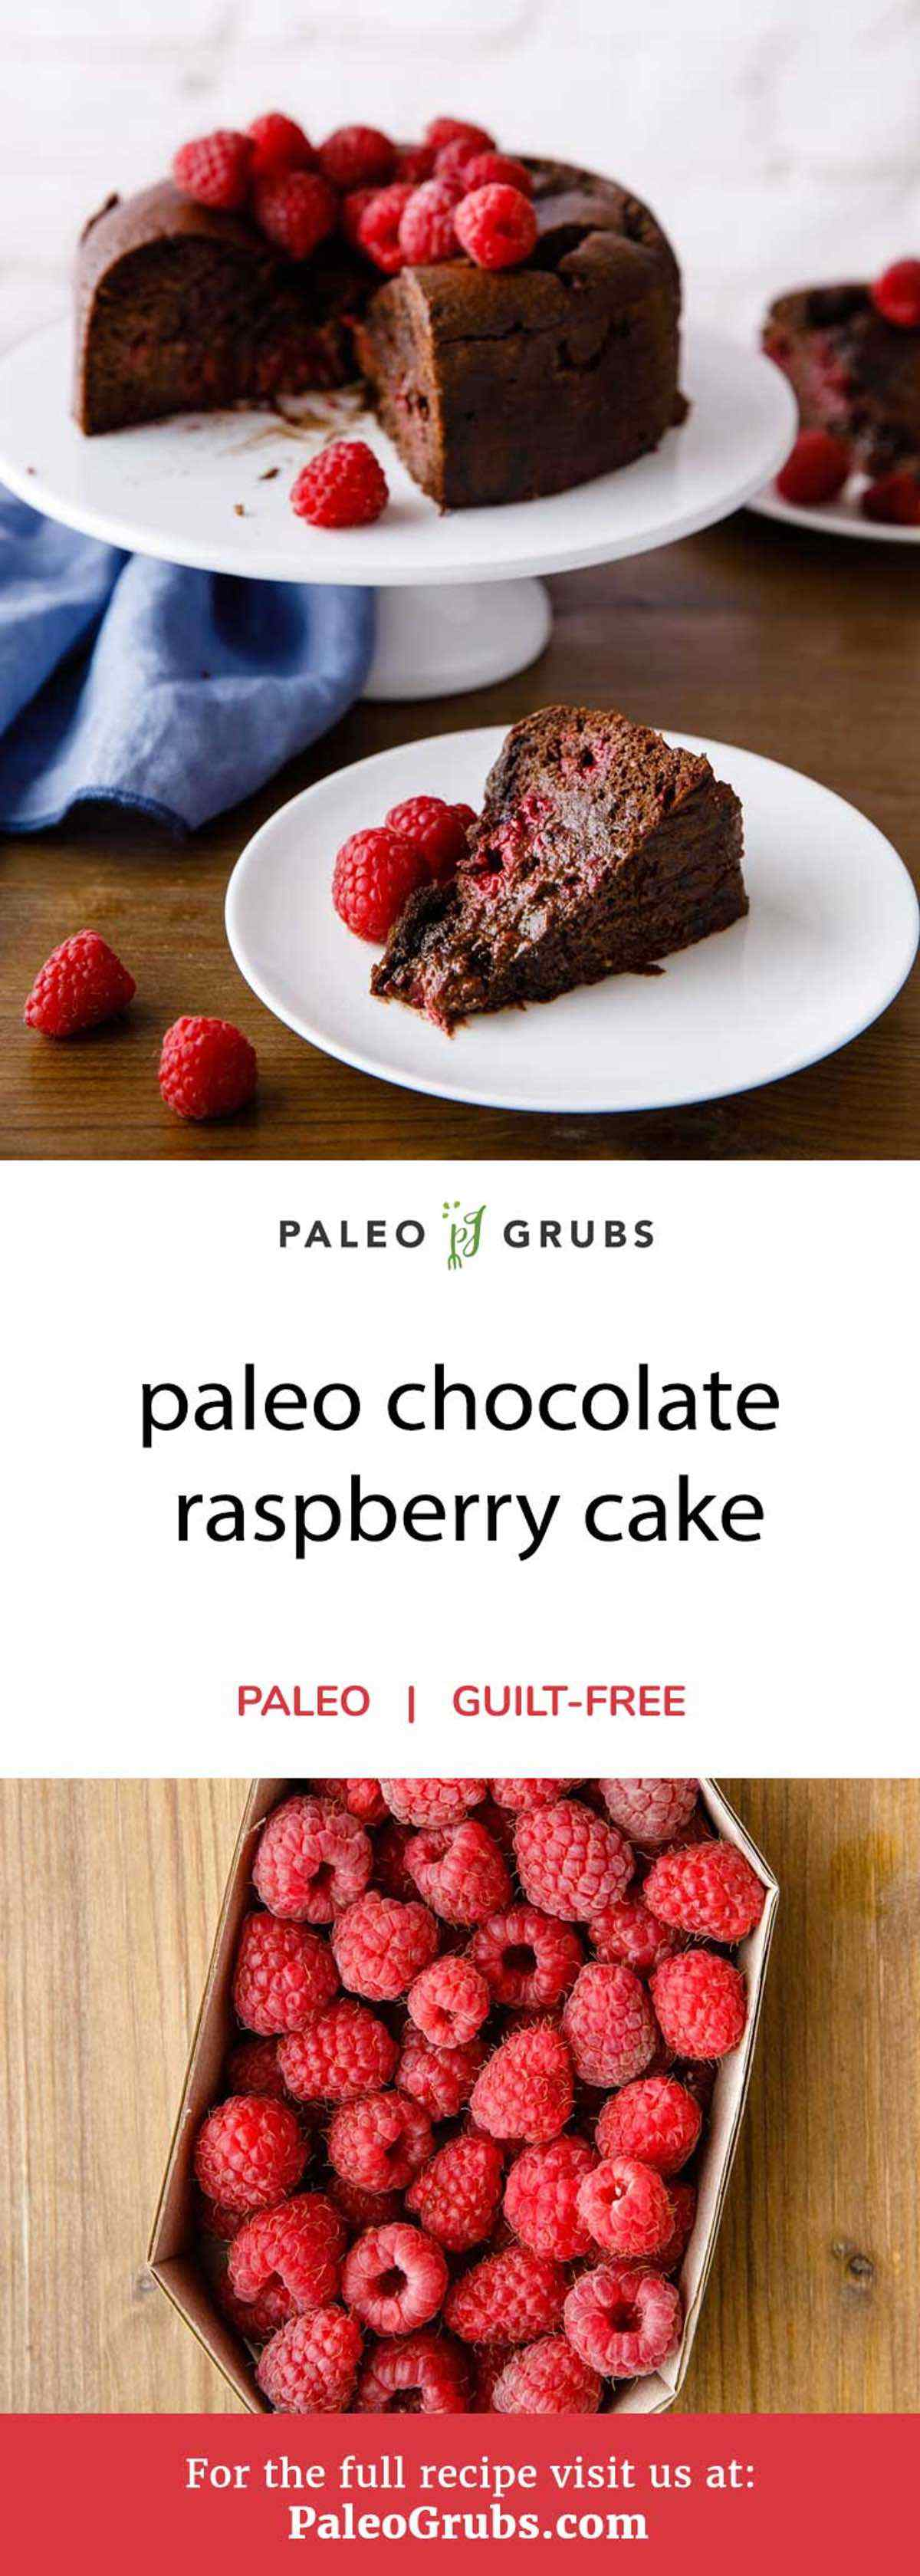 Attention all cake lovers -- you absolutely must try this paleo-friendly chocolate raspberry cake. Made entirely from scratch with all natural ingredients, it's the perfect choice for anyone looking to satisfy their sweet tooth in a healthy manner.